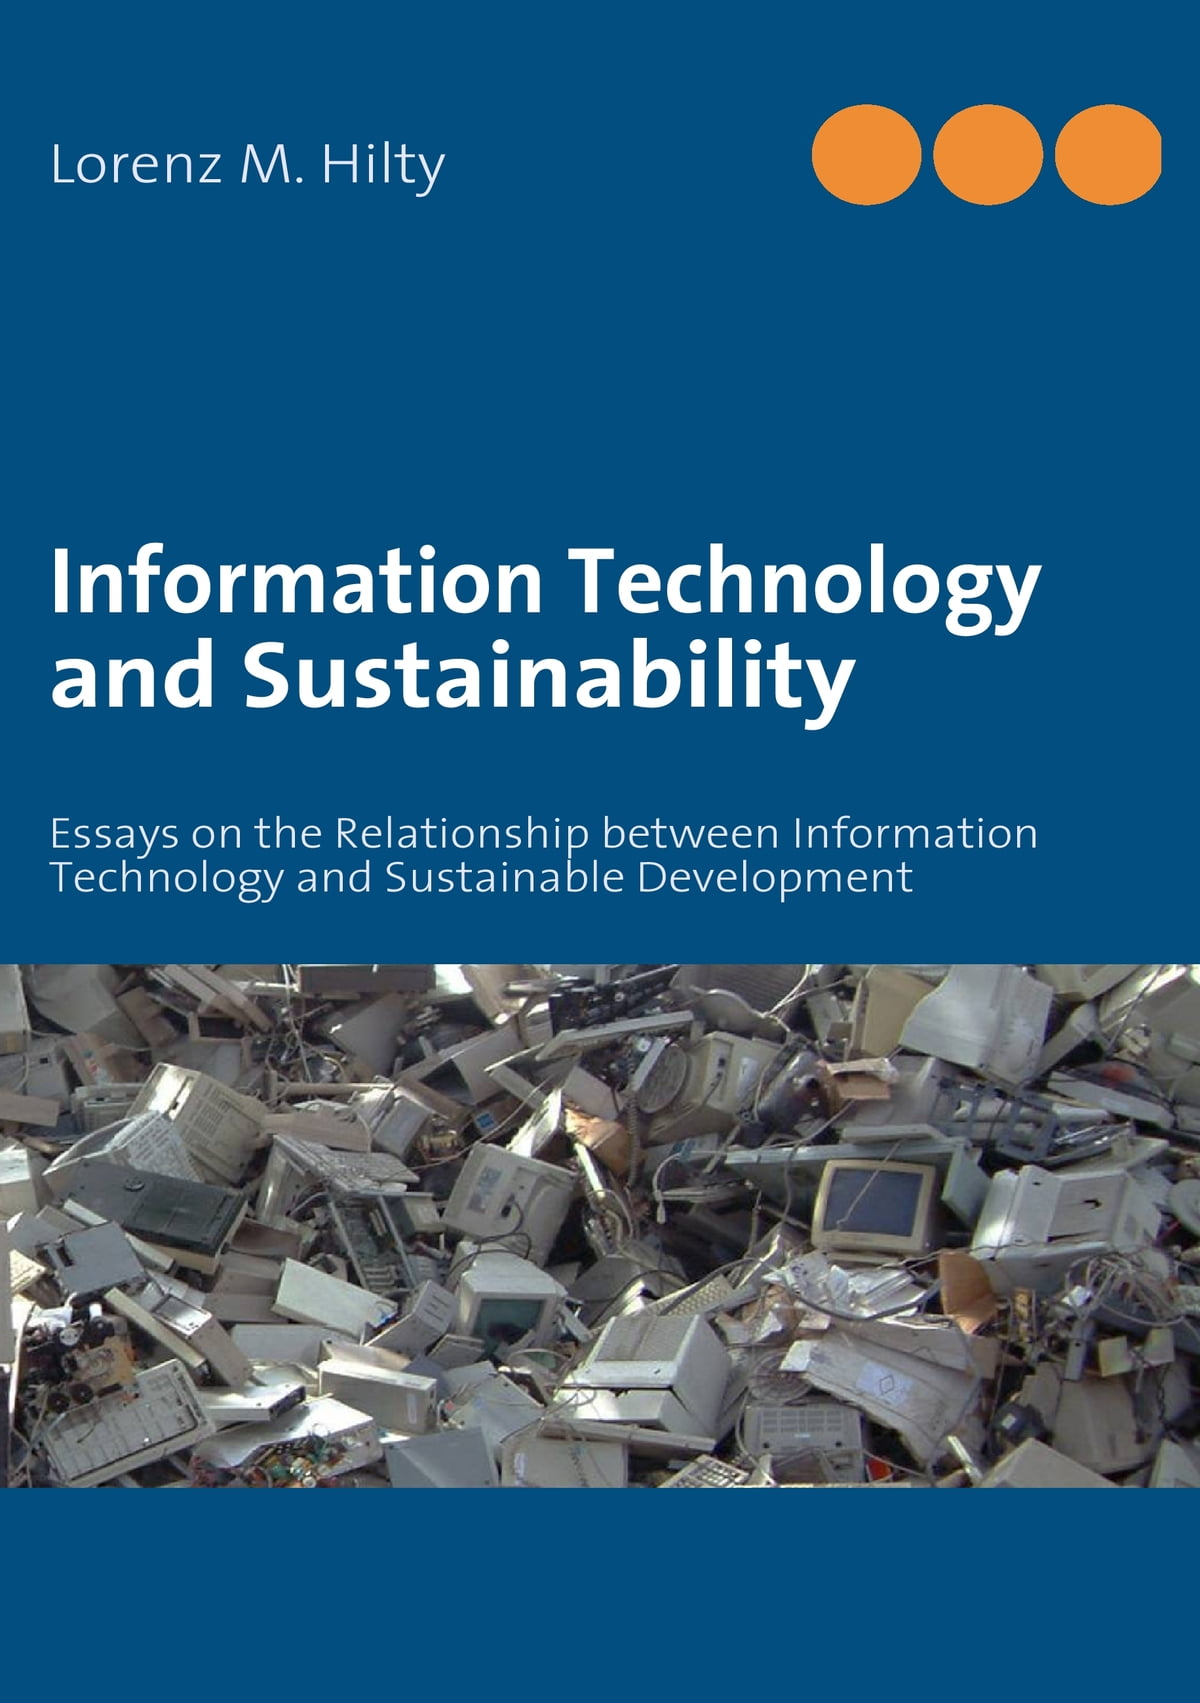 Information Technology And Sustainability Ebook By Lorenz M Hilty  Information Technology And Sustainability Ebook By Lorenz M Hilty     Rakuten Kobo Health Essay Writing also Custom Service  Essay Good Health